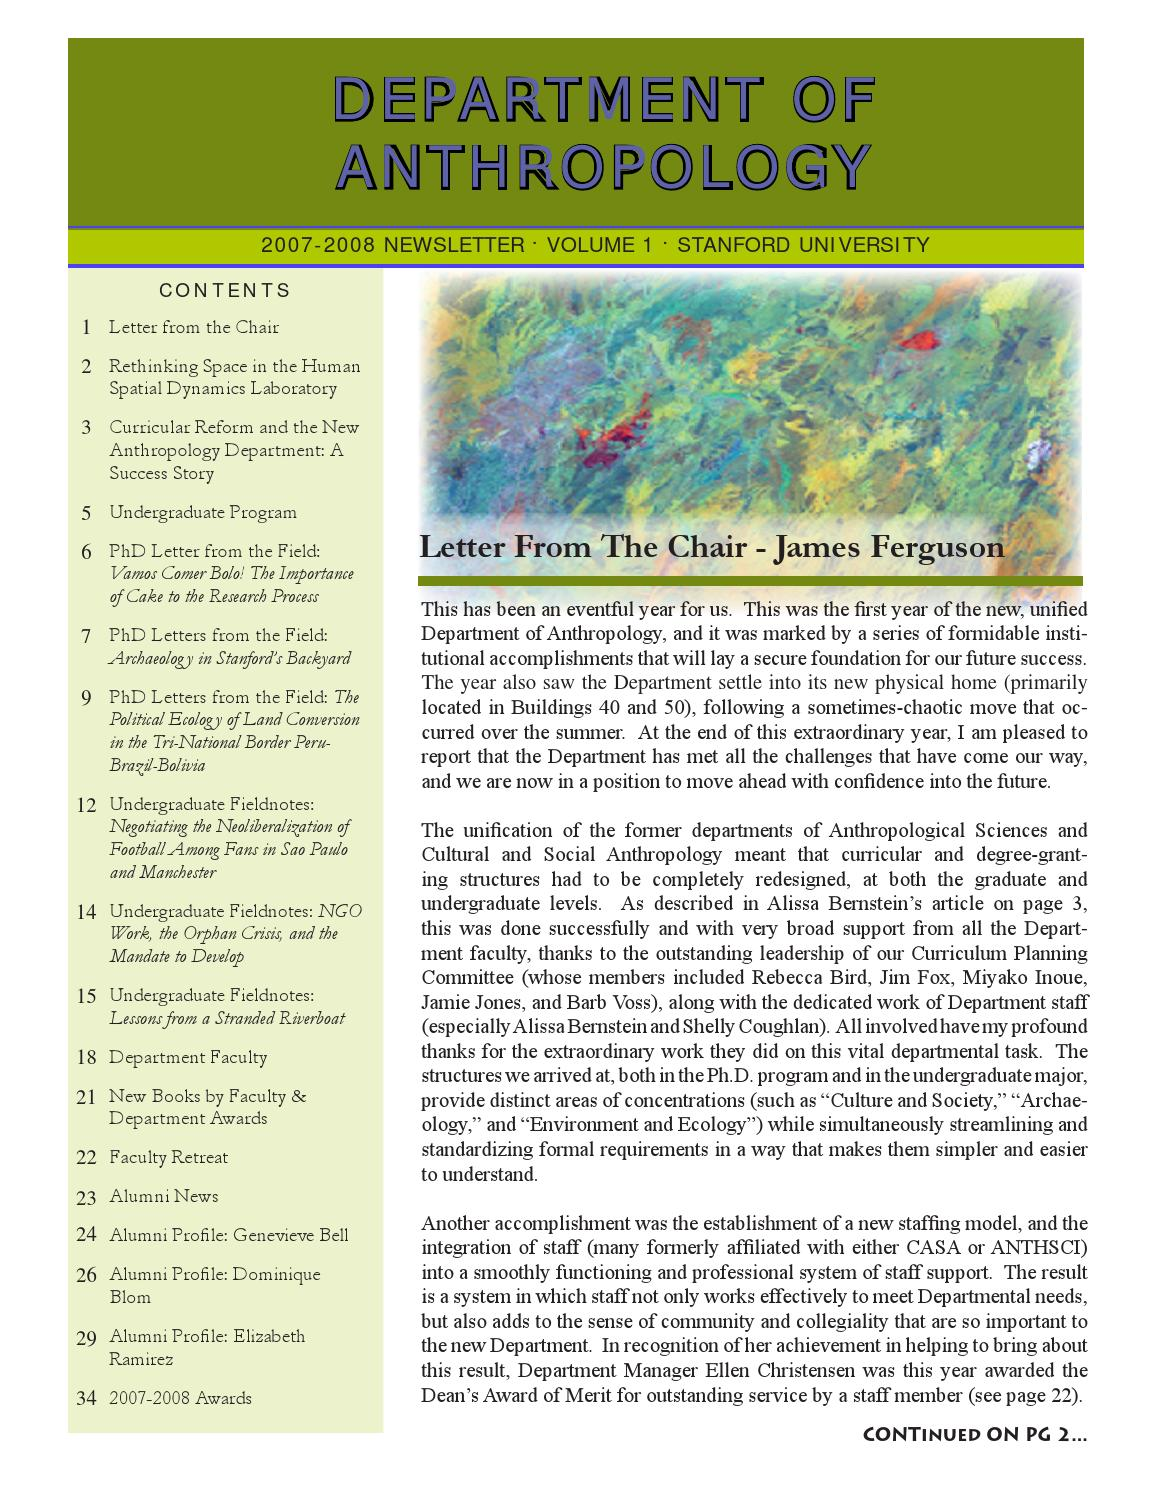 Anthropology Newsletter Volume 1 by Stanford Anthropology - issuu